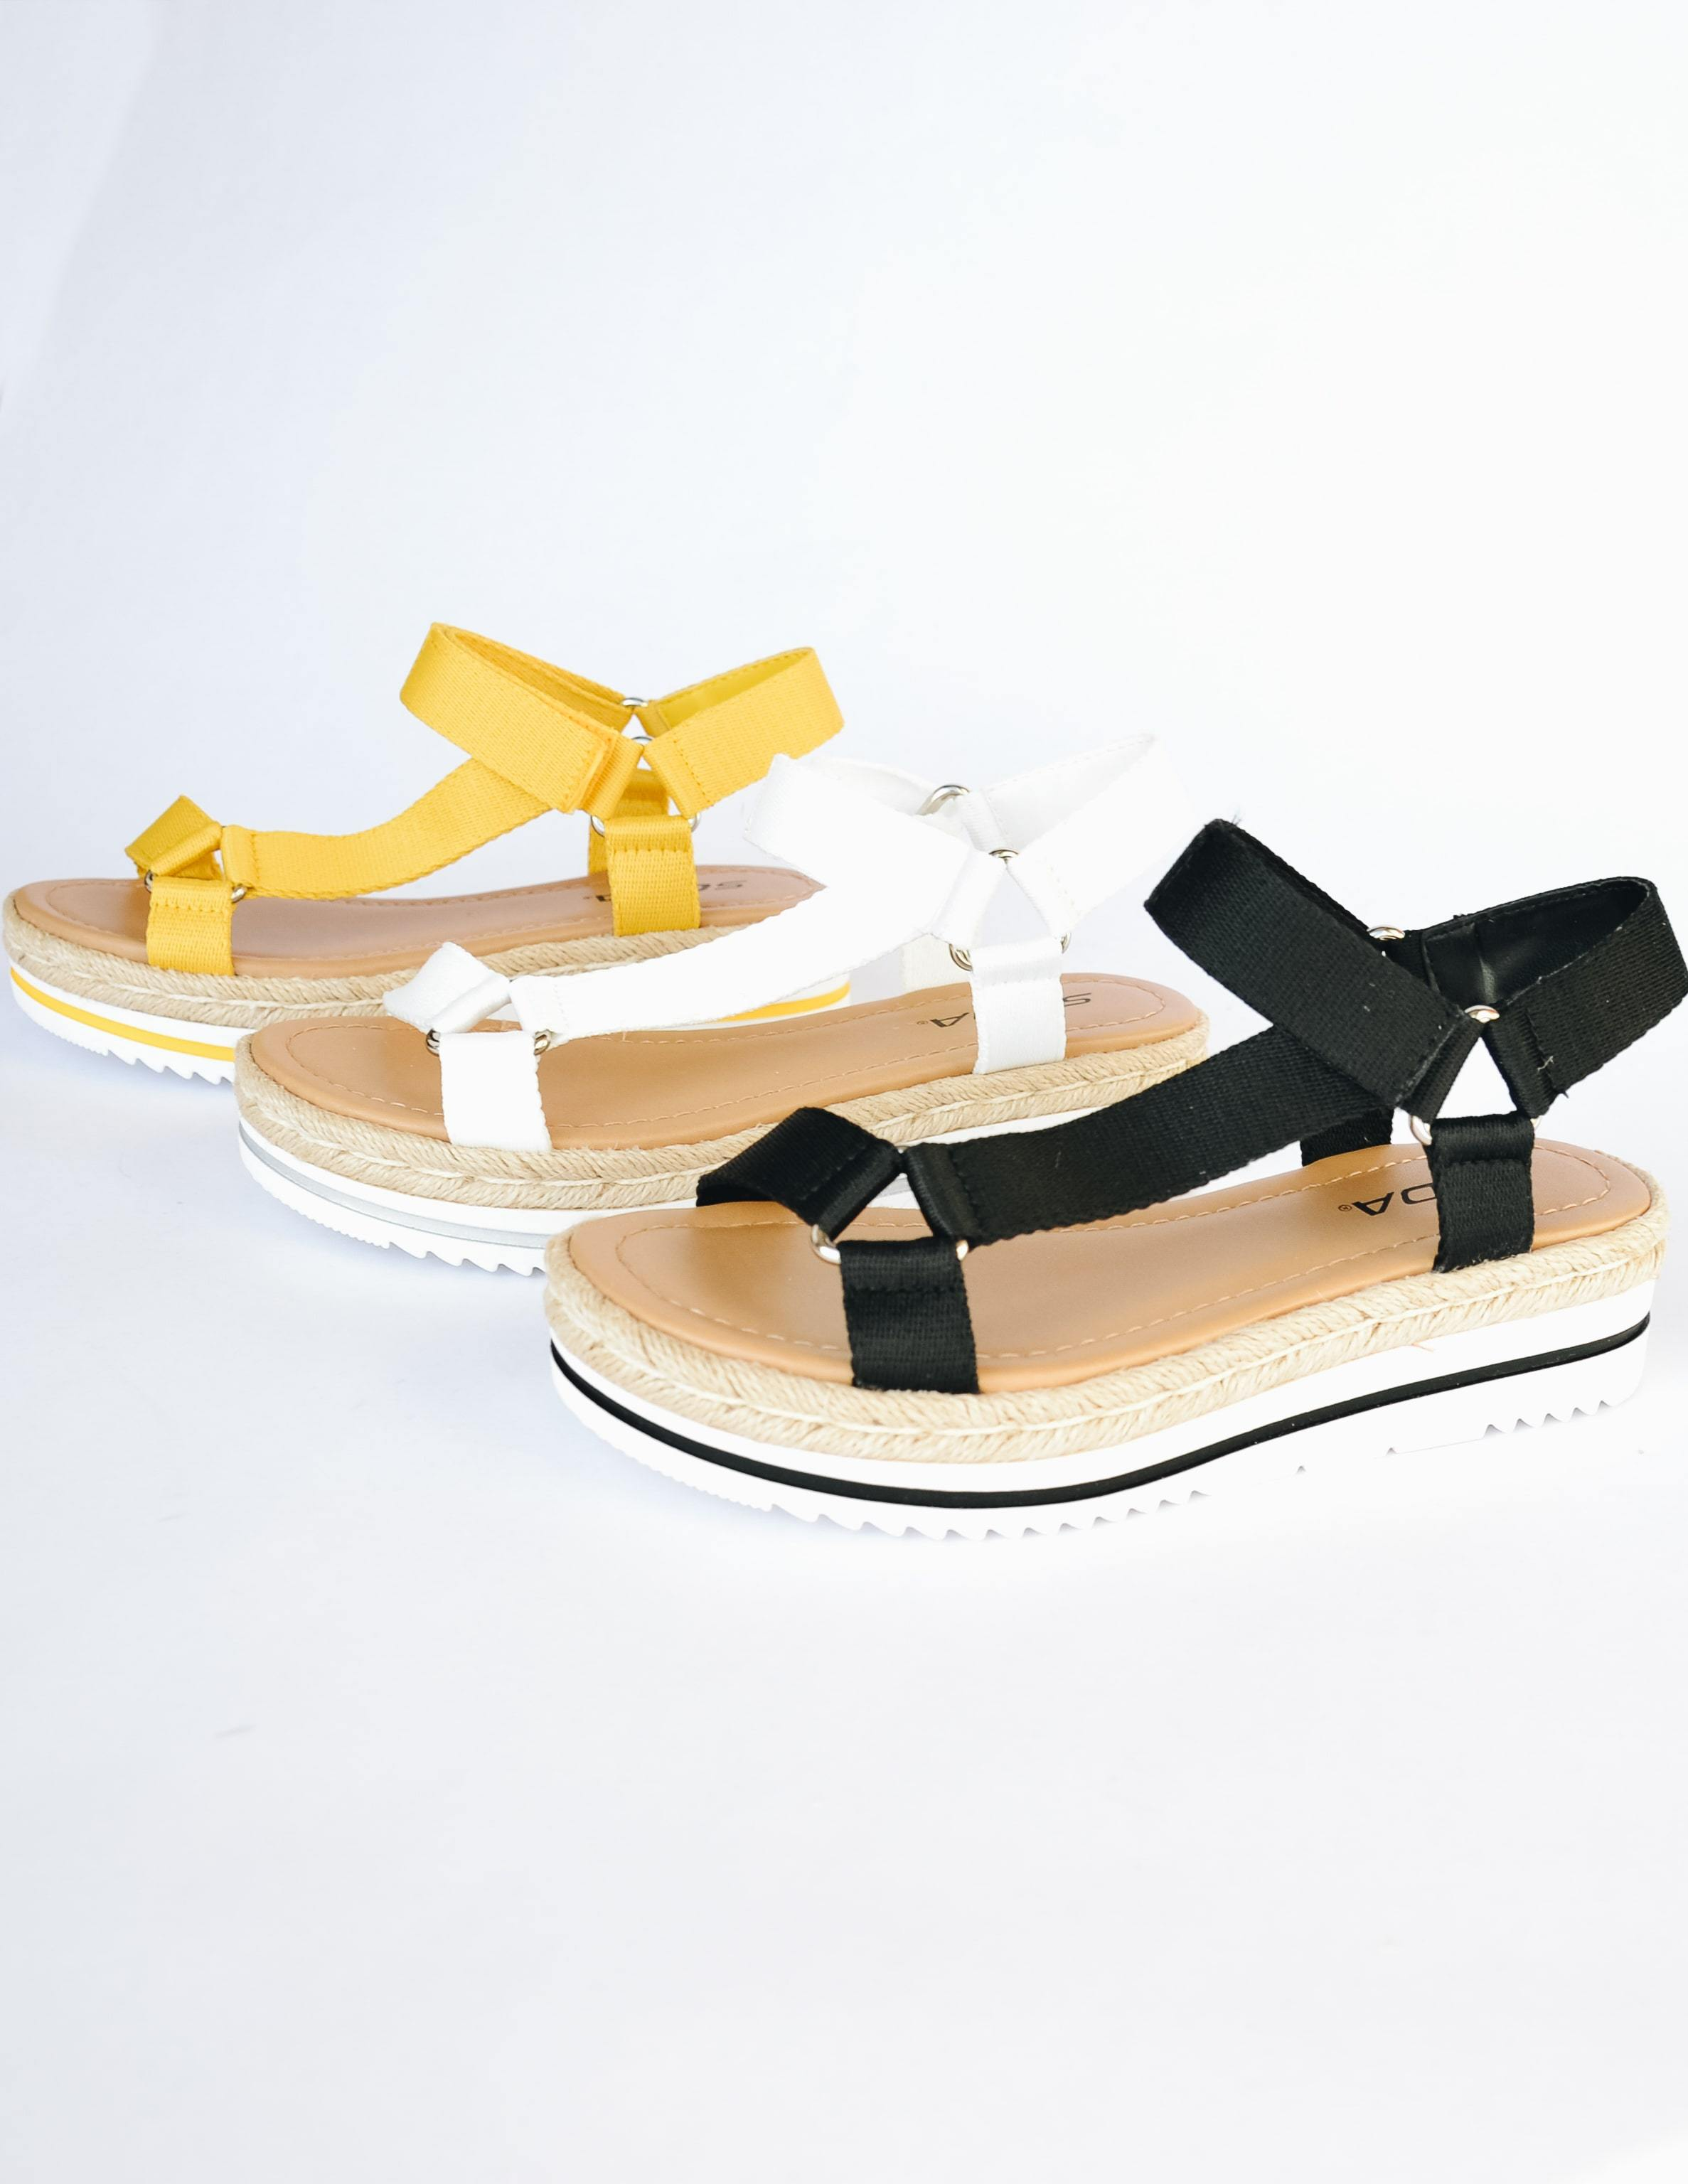 Yellow, white, and black good sport sandals lined up on white background